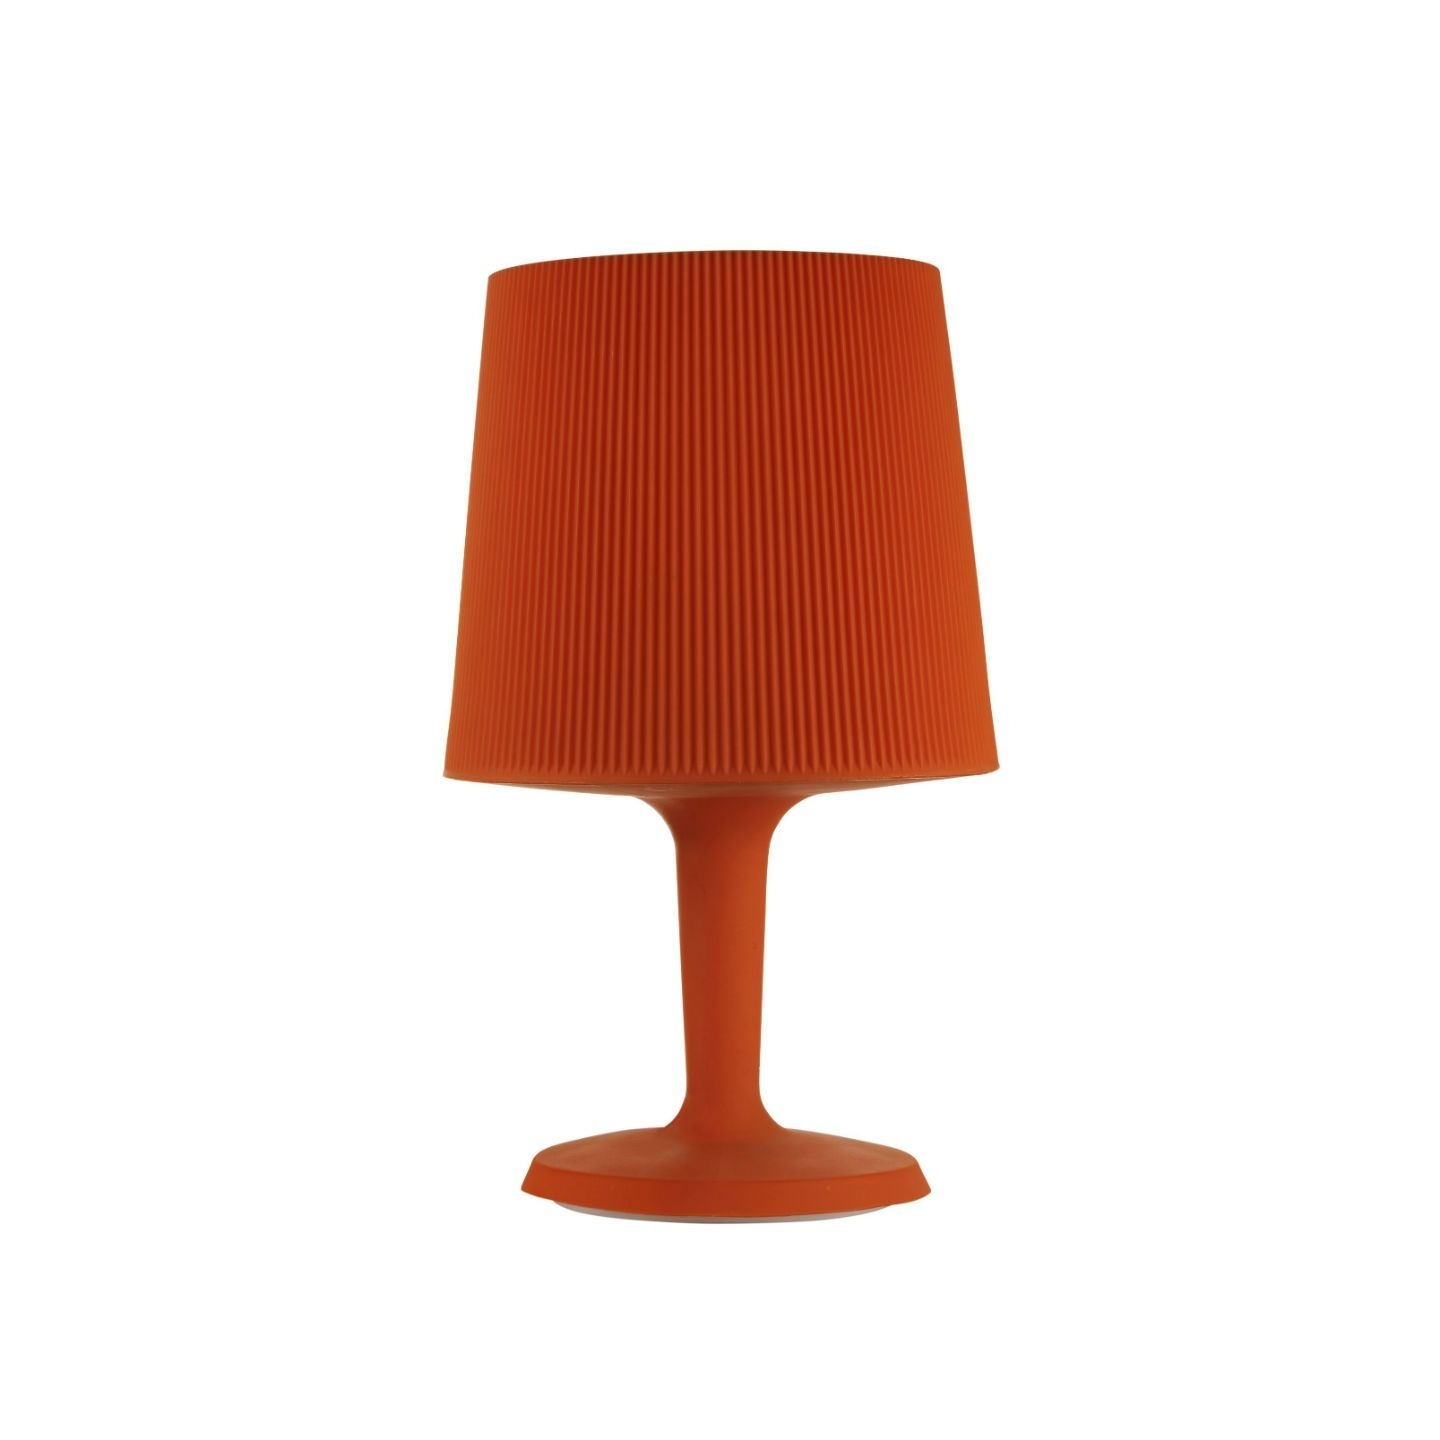 Widely Used Metalarte Inout Table Lamp Small Of Outdoor Red 747800031, Small With Regard To Red Outdoor Table Lanterns (View 13 of 20)